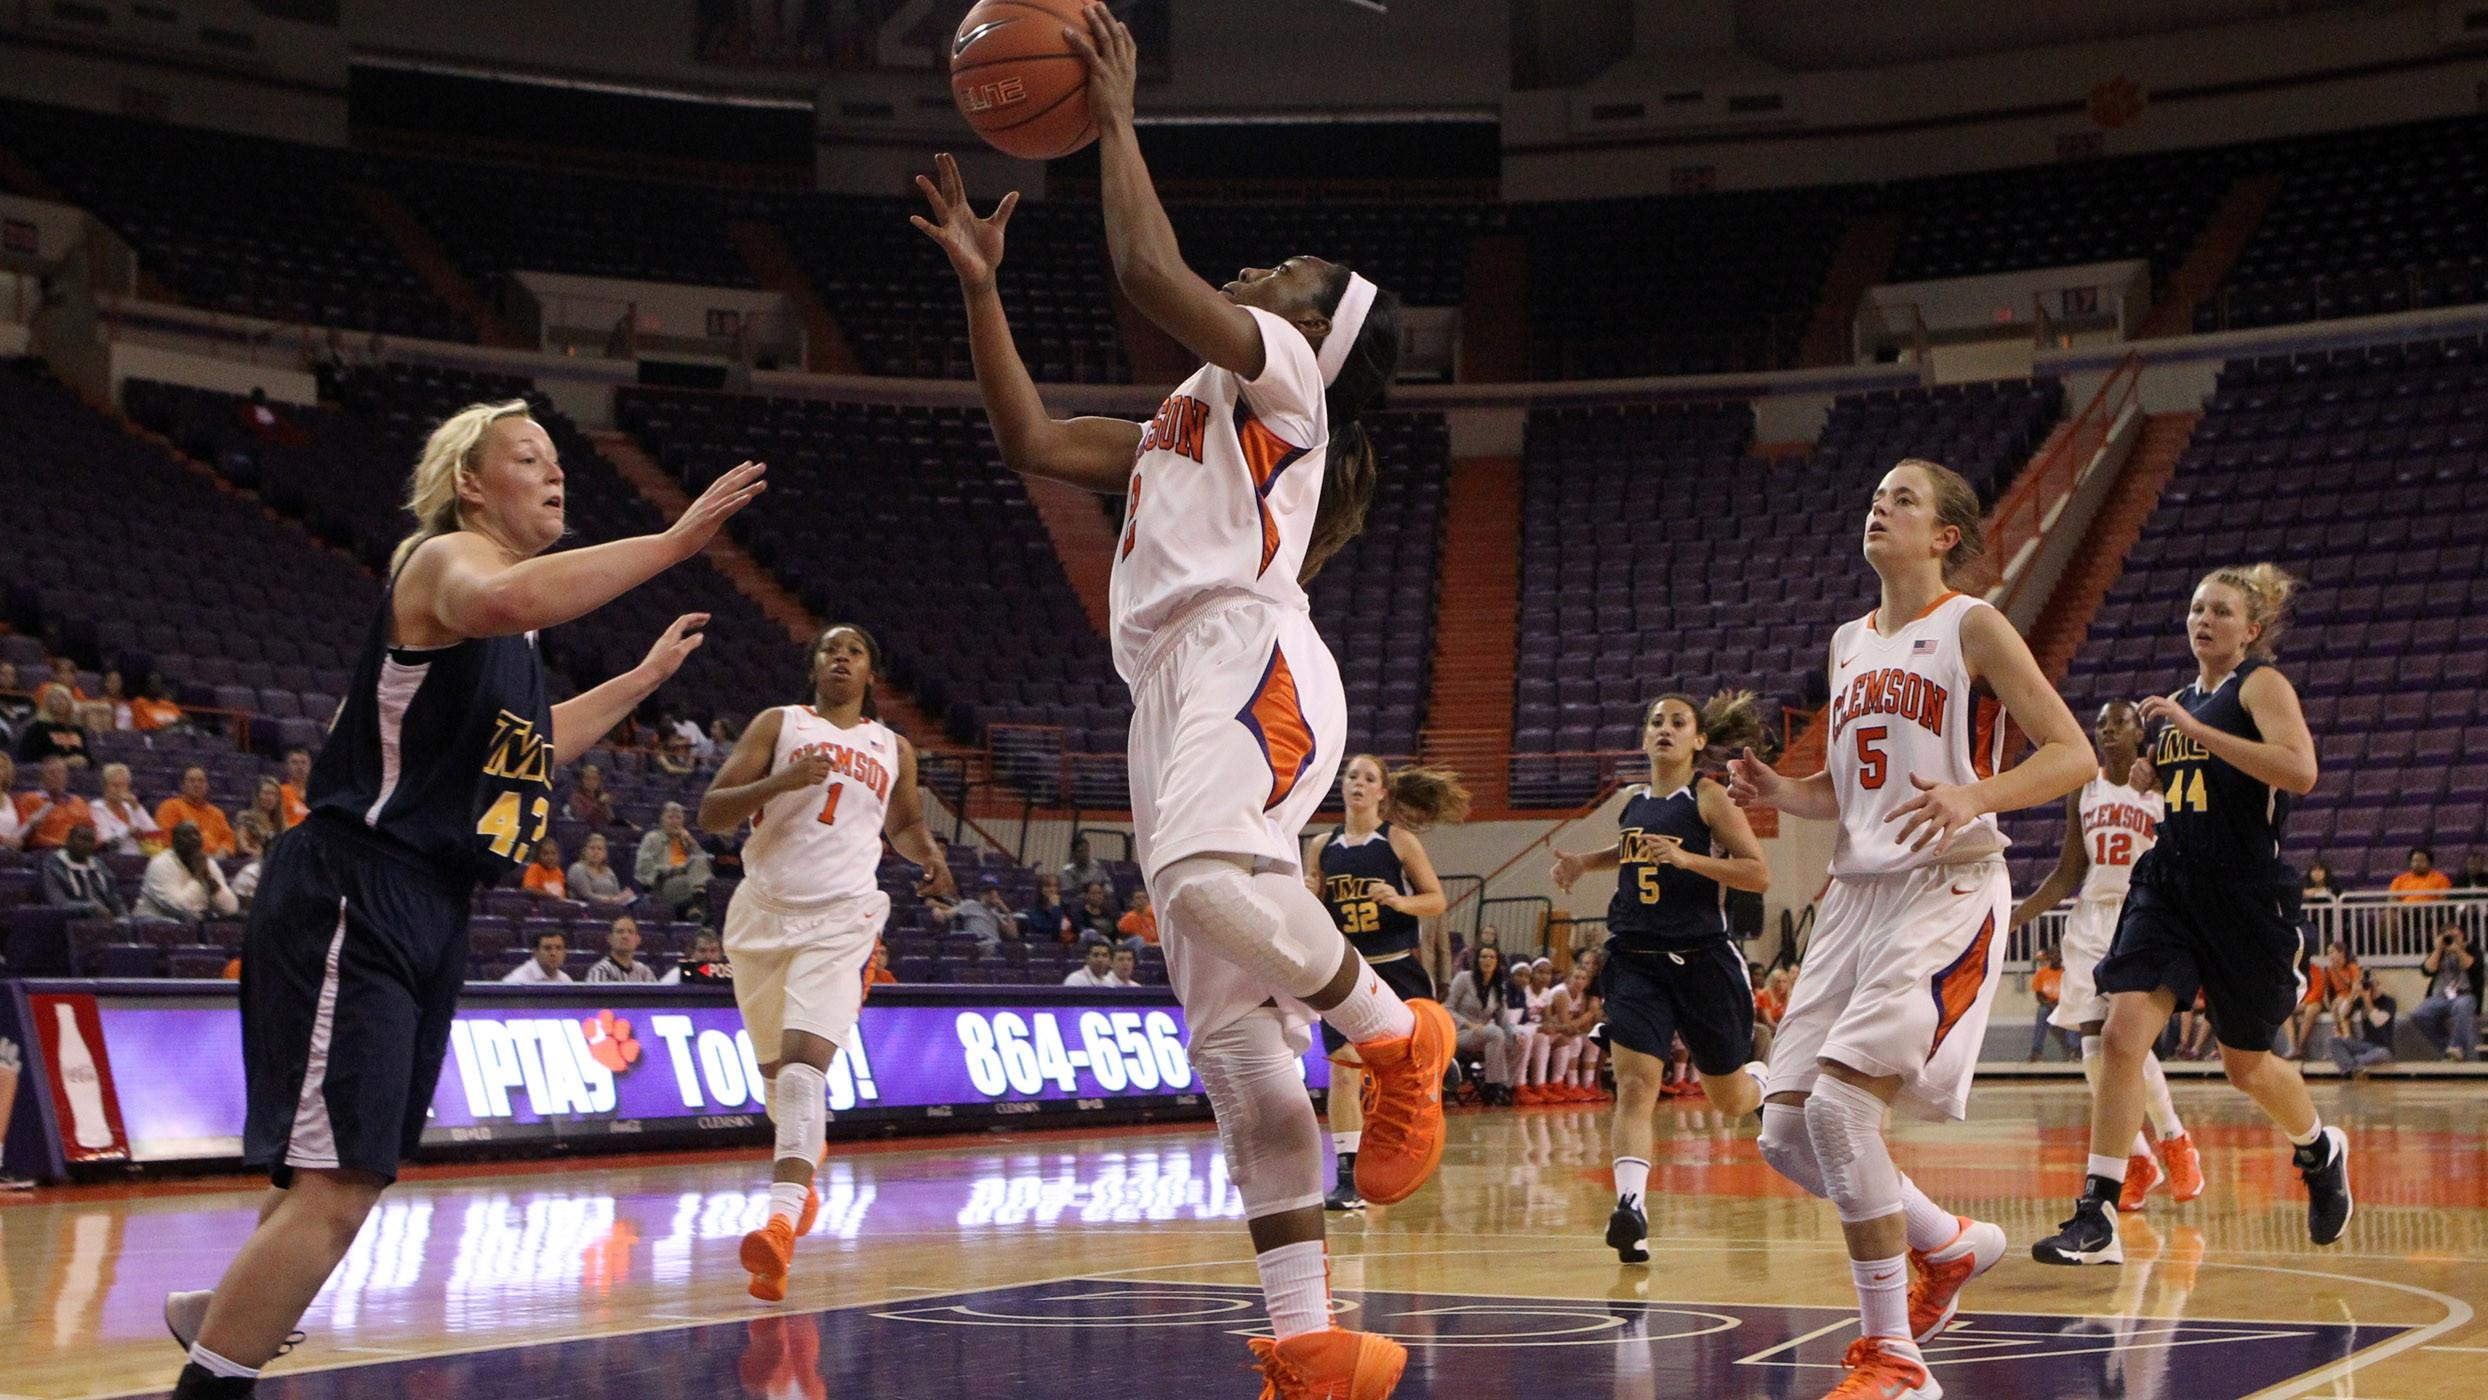 @ClemsonWBB Plays Host to Wofford Sunday at 2:00 pm